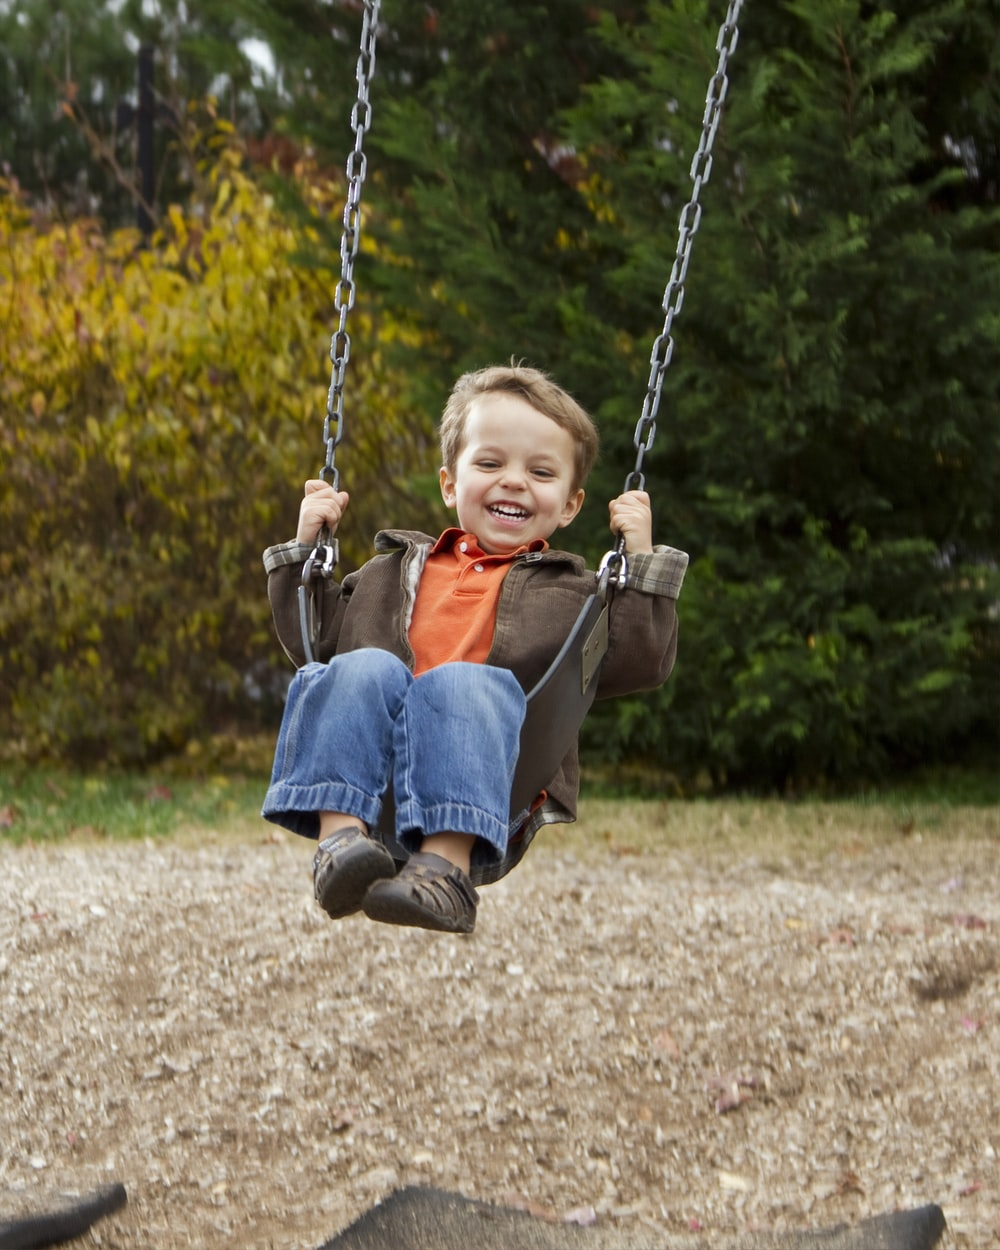 20 Childhood Pictures Download Free Images Stock Photos On Unsplash